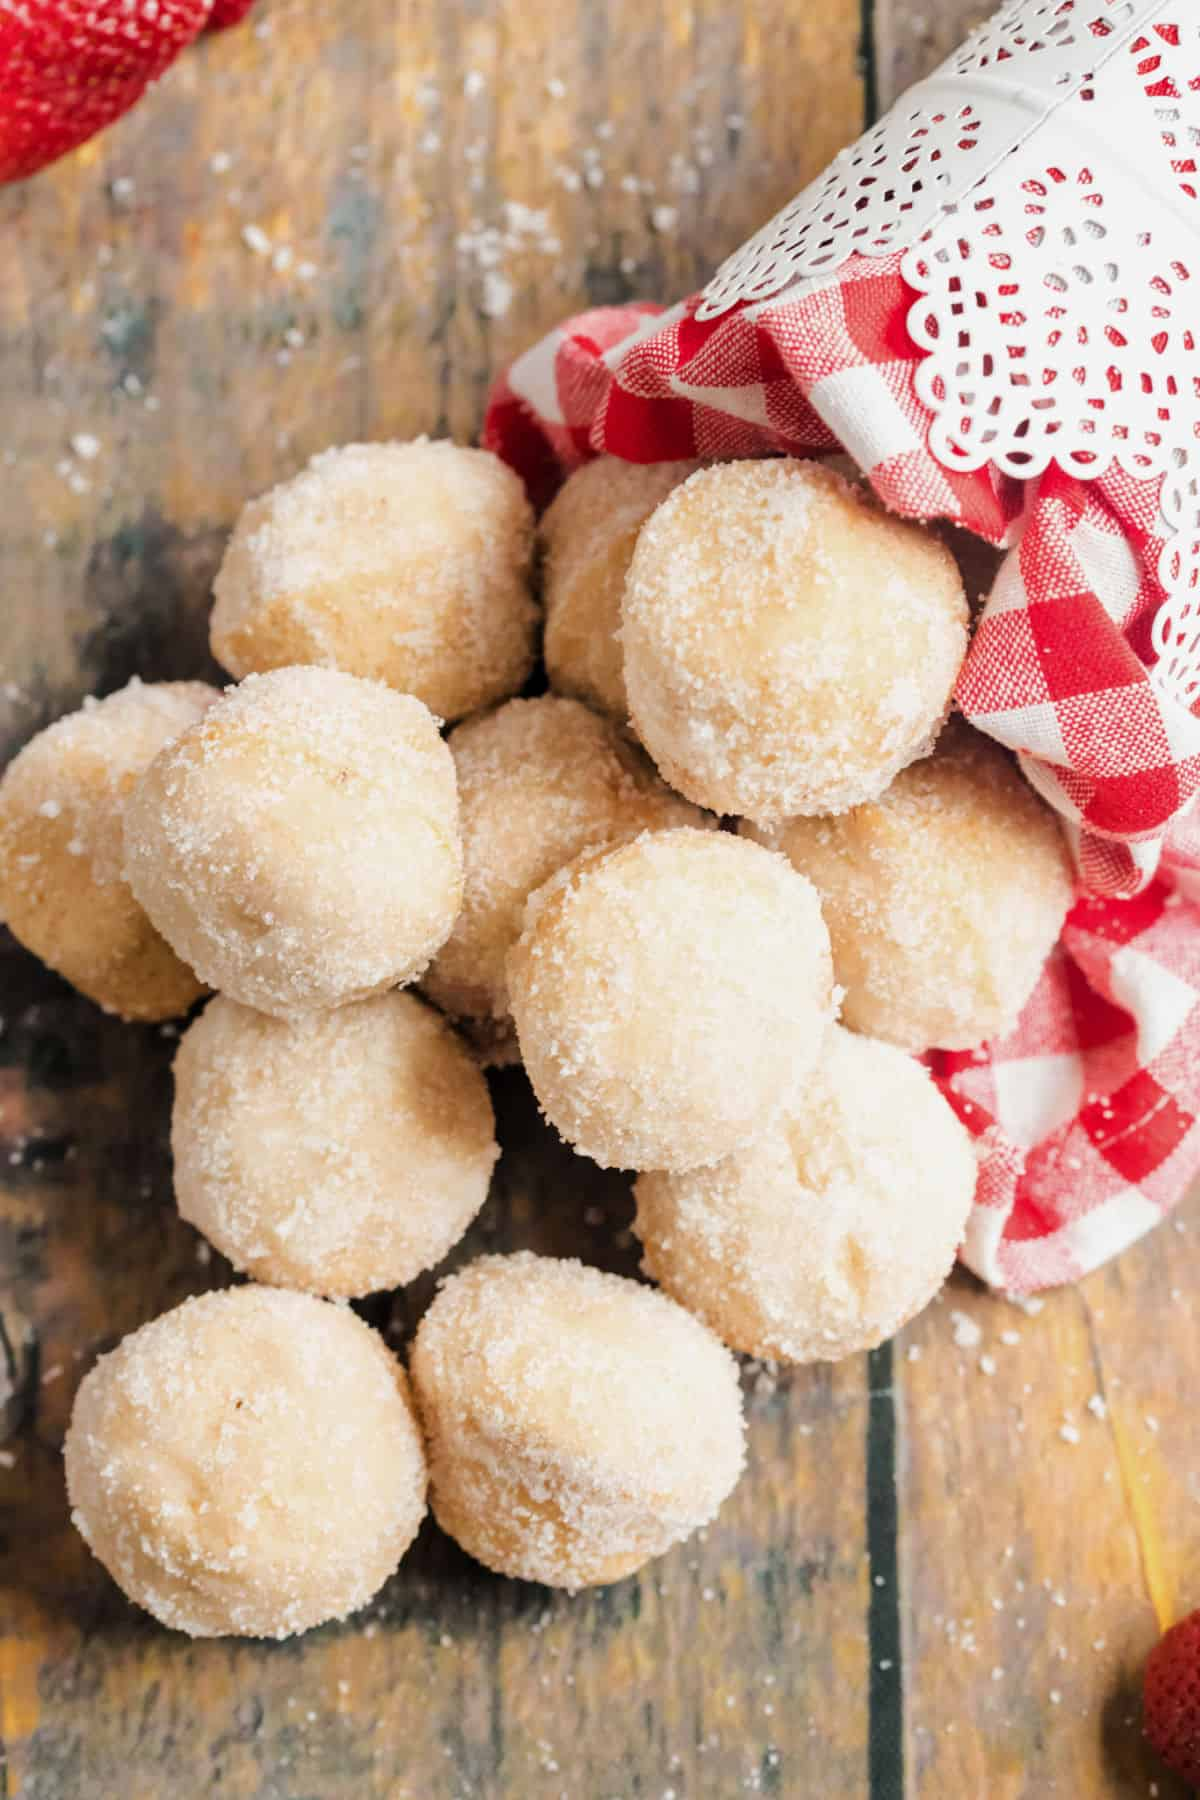 Jelly filled donut holes falling out of a bowl.